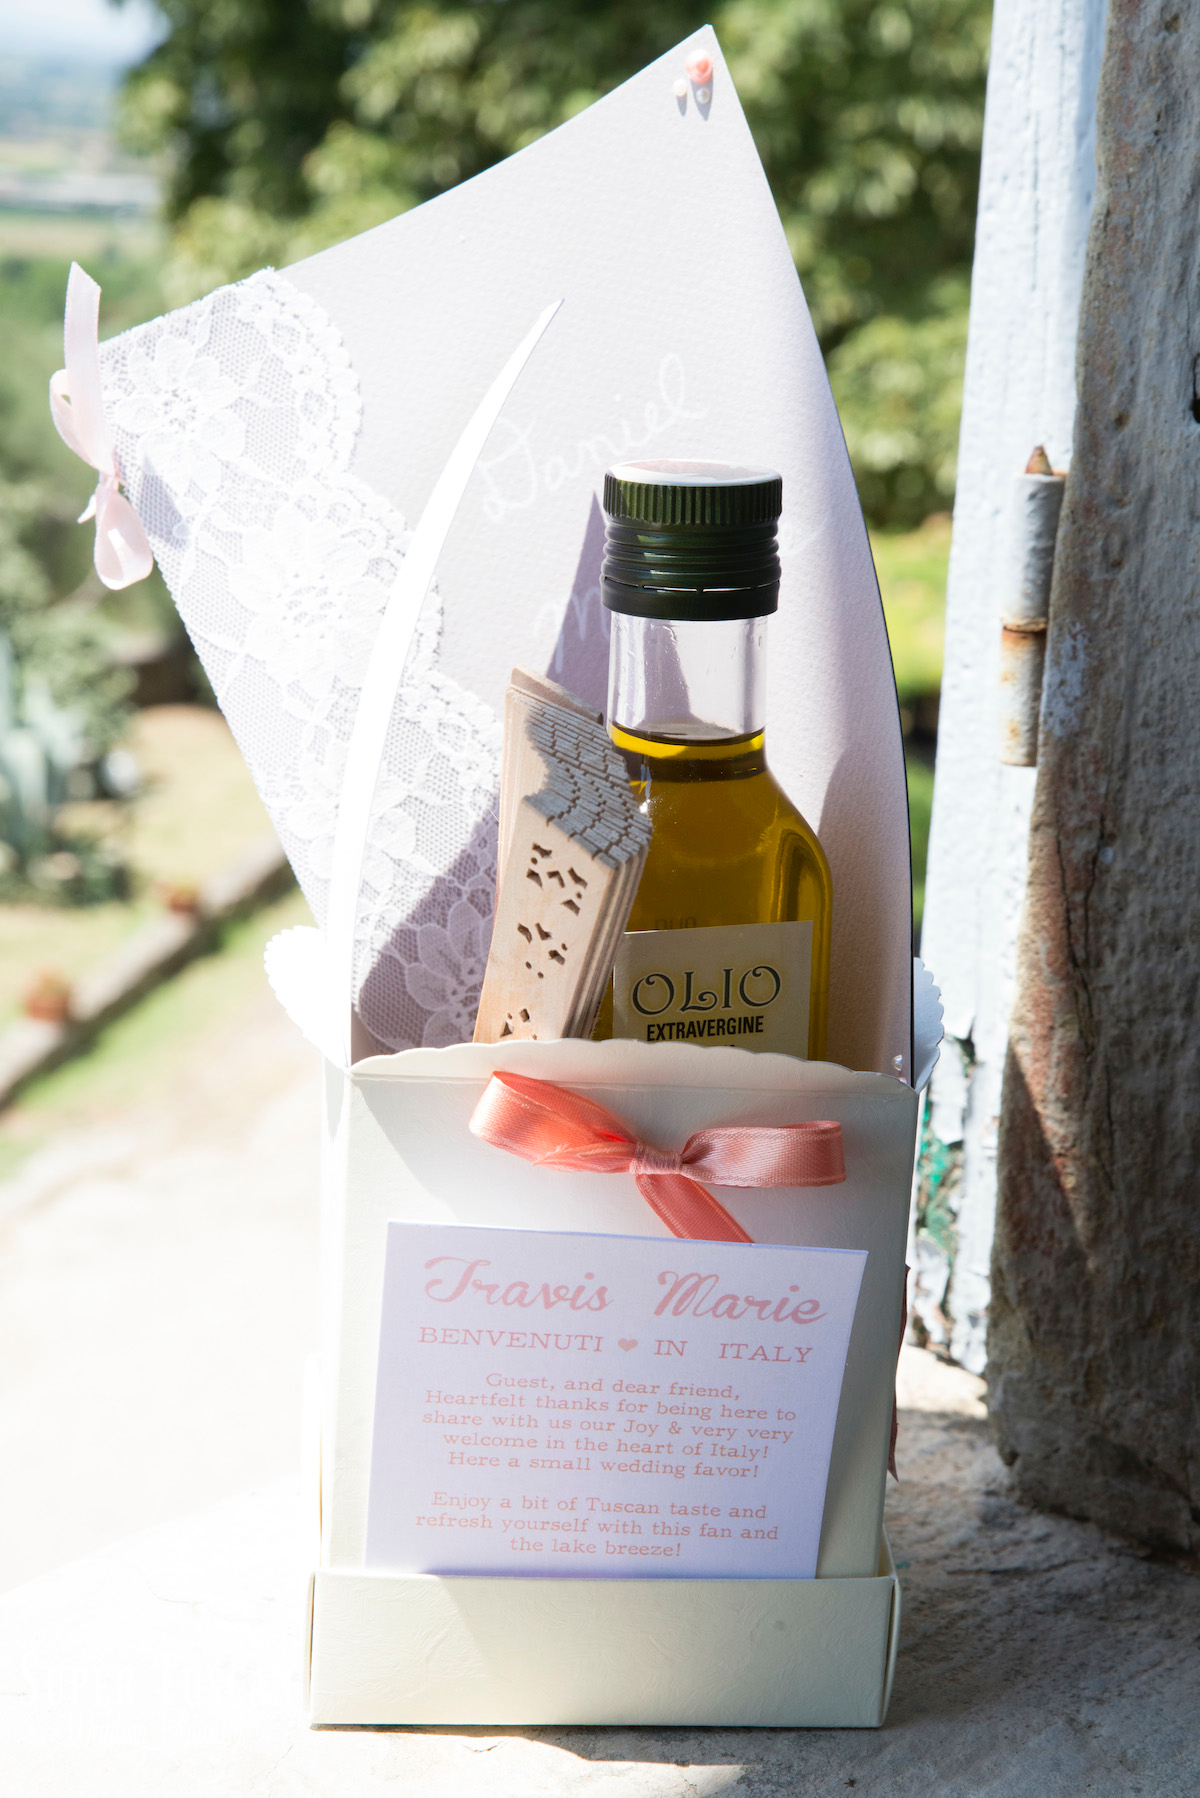 02Trasimeno lake wedding in Italy